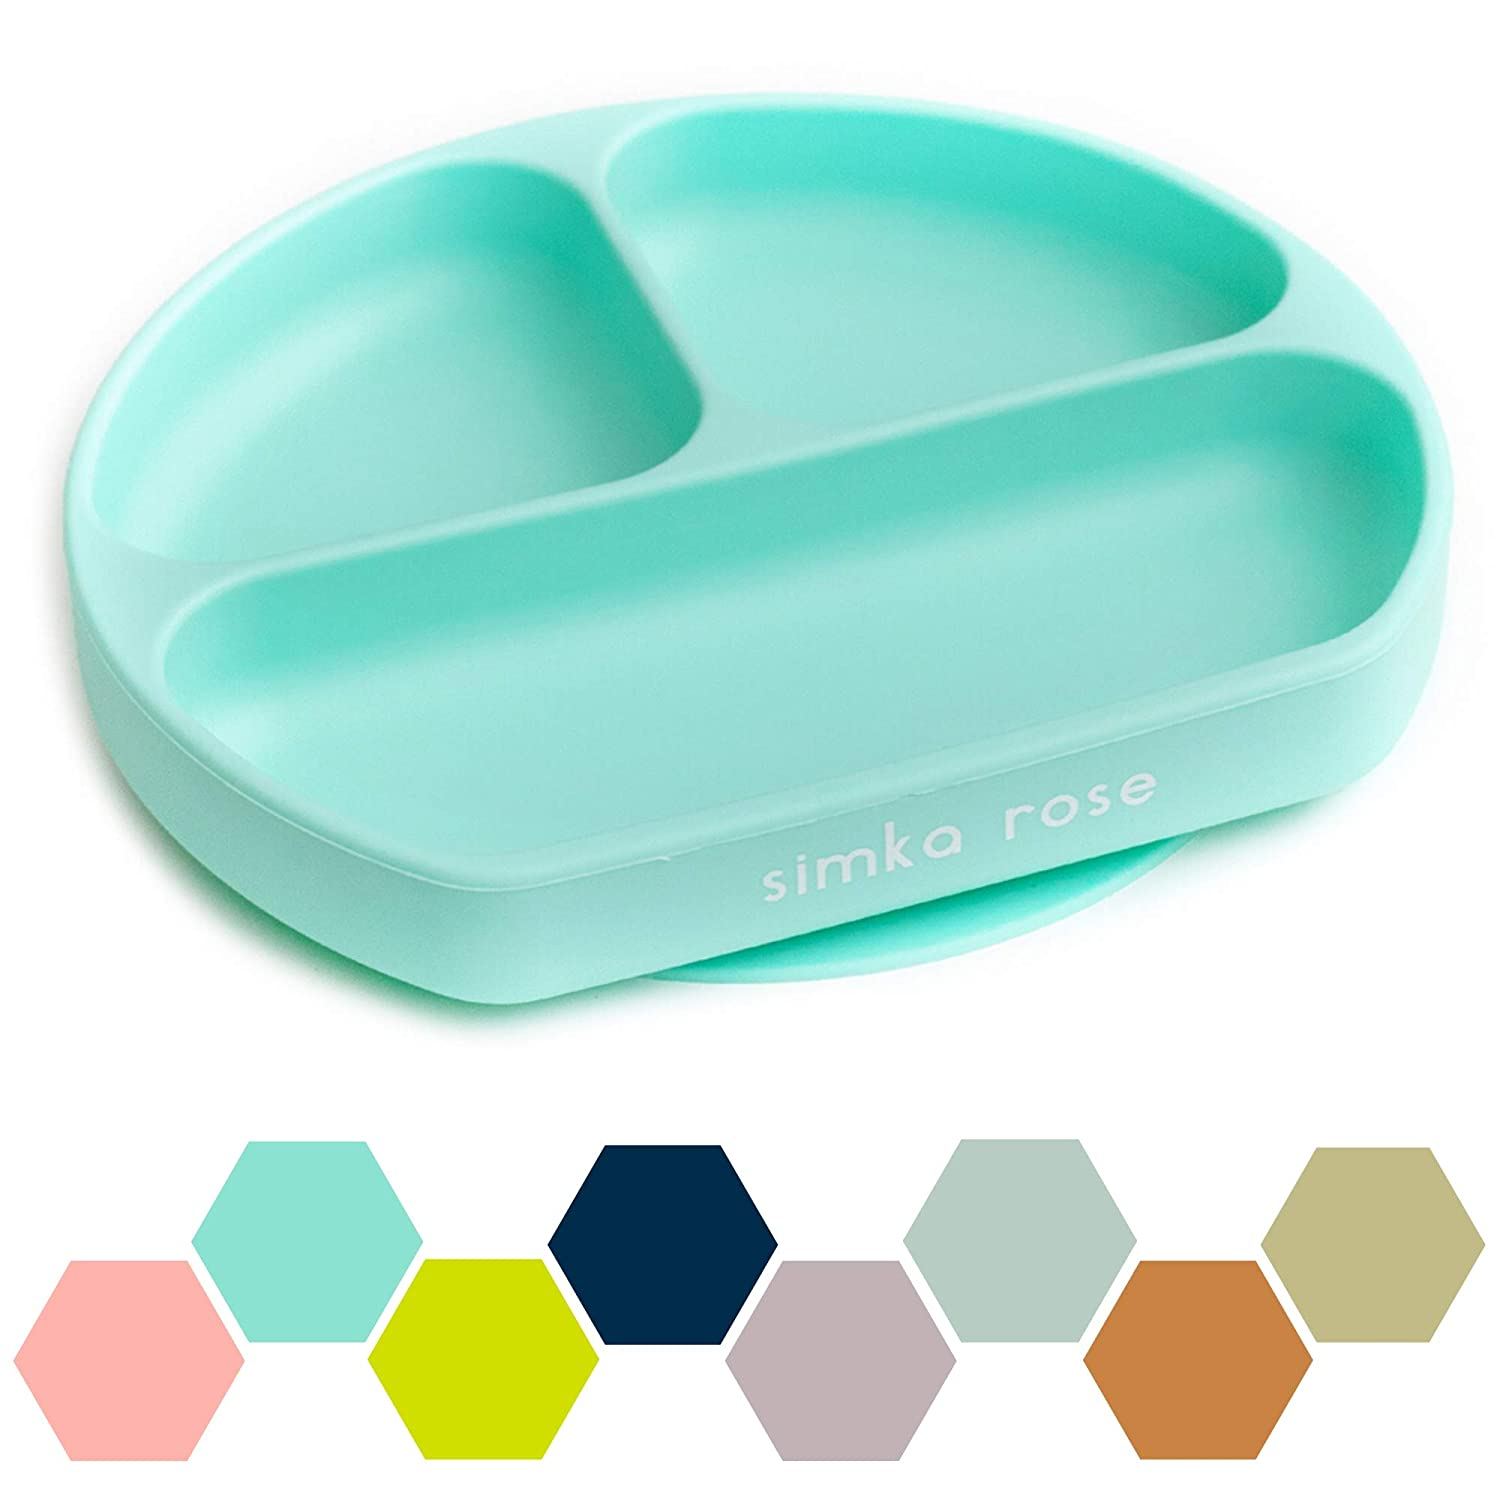 Suction Plate for Baby and Toddler - Divided Silicone Plate - BPA Free - Dishwasher and Microwave Safe - Cute Baby Shower Gift (Mint)